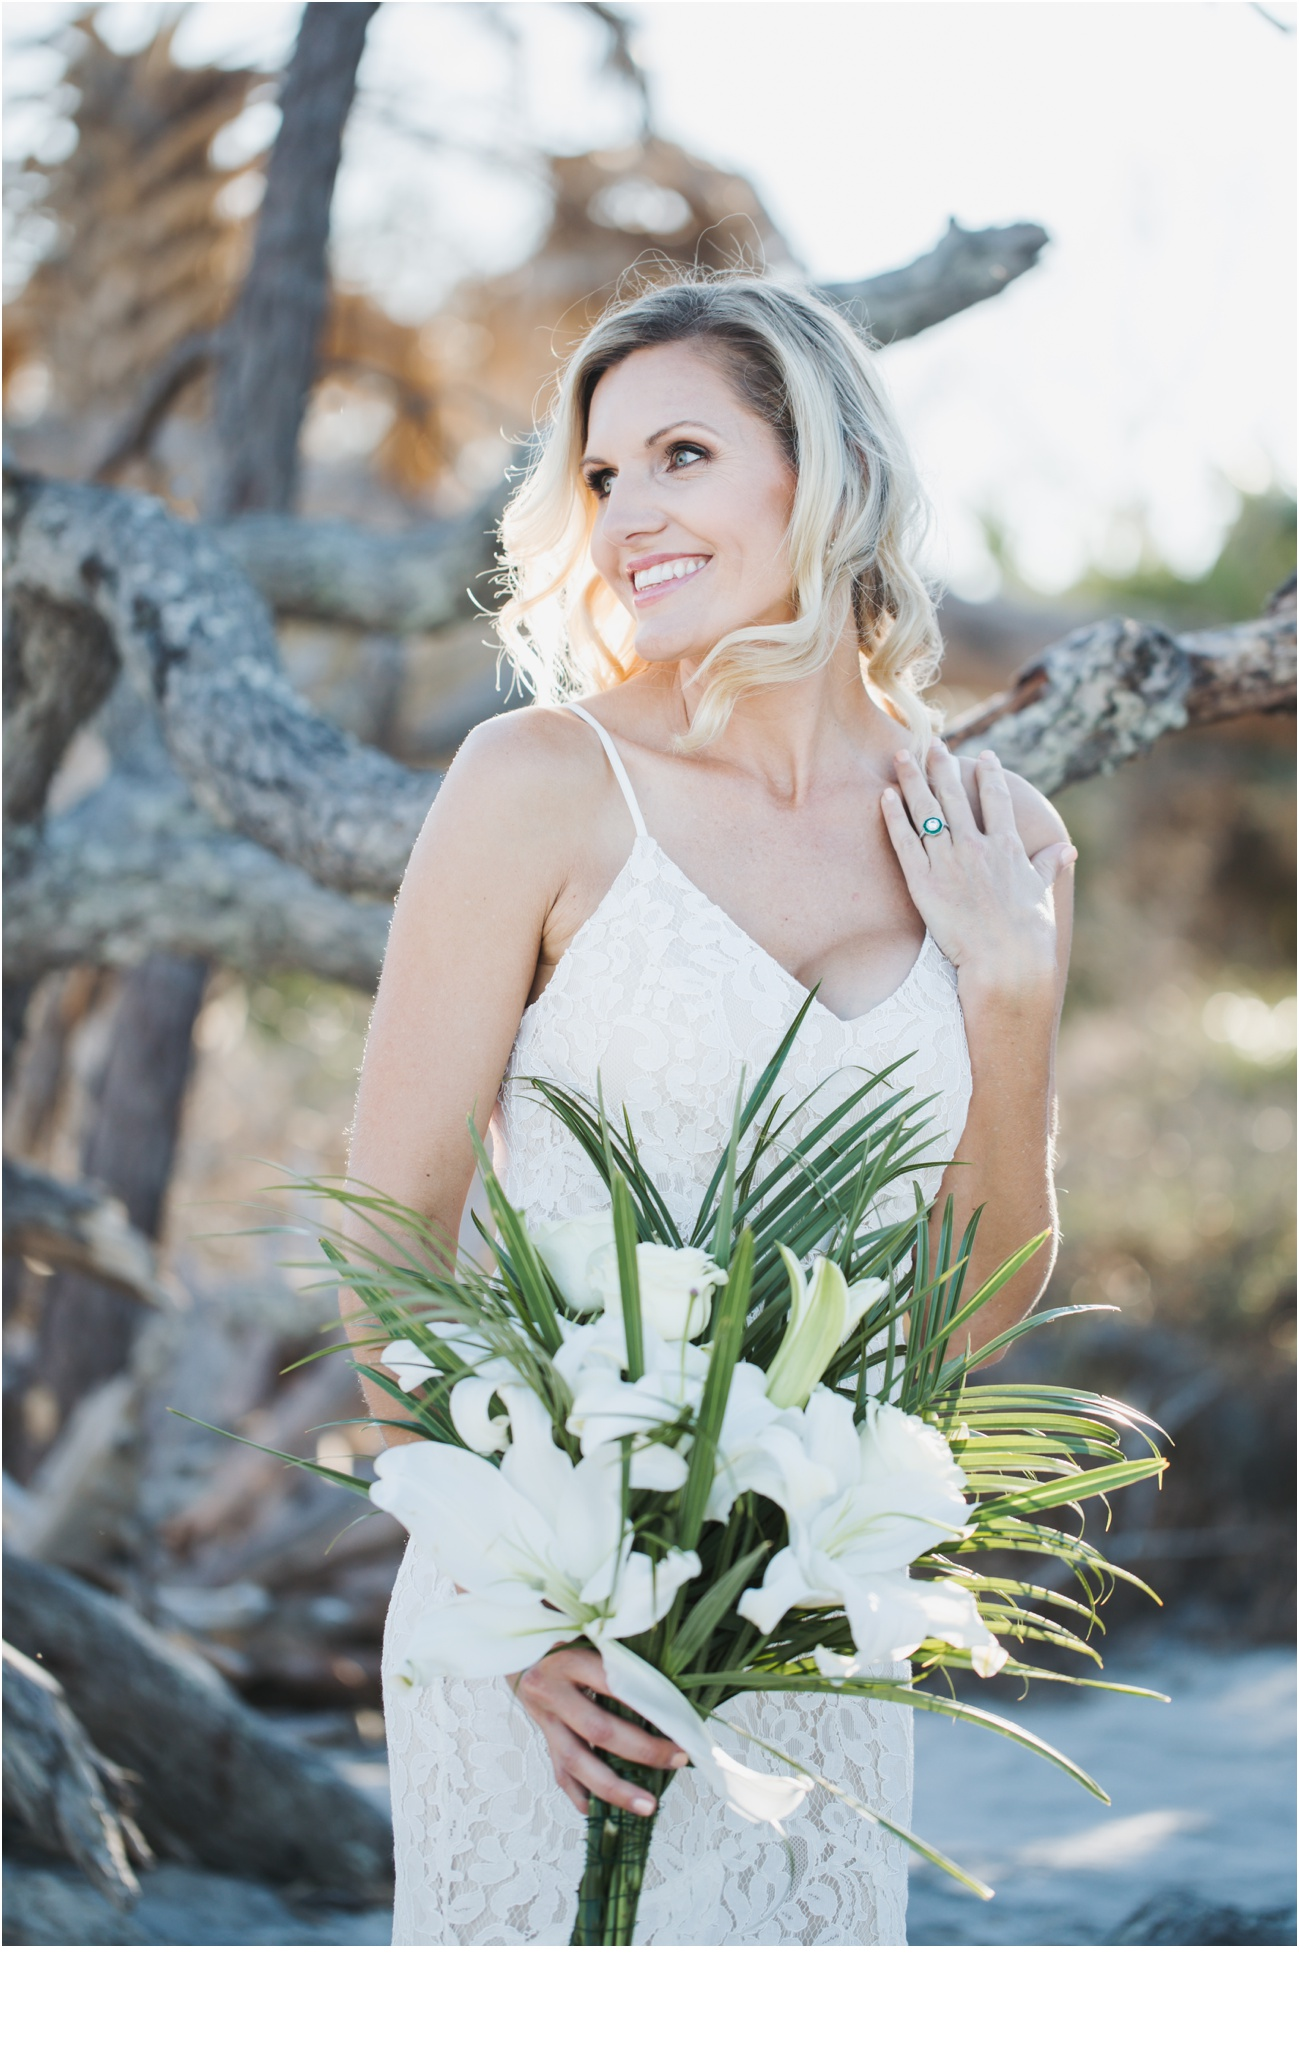 Rainey_Gregg_Photography_St._Simons_Island_Georgia_California_Wedding_Portrait_Photography_1578.jpg